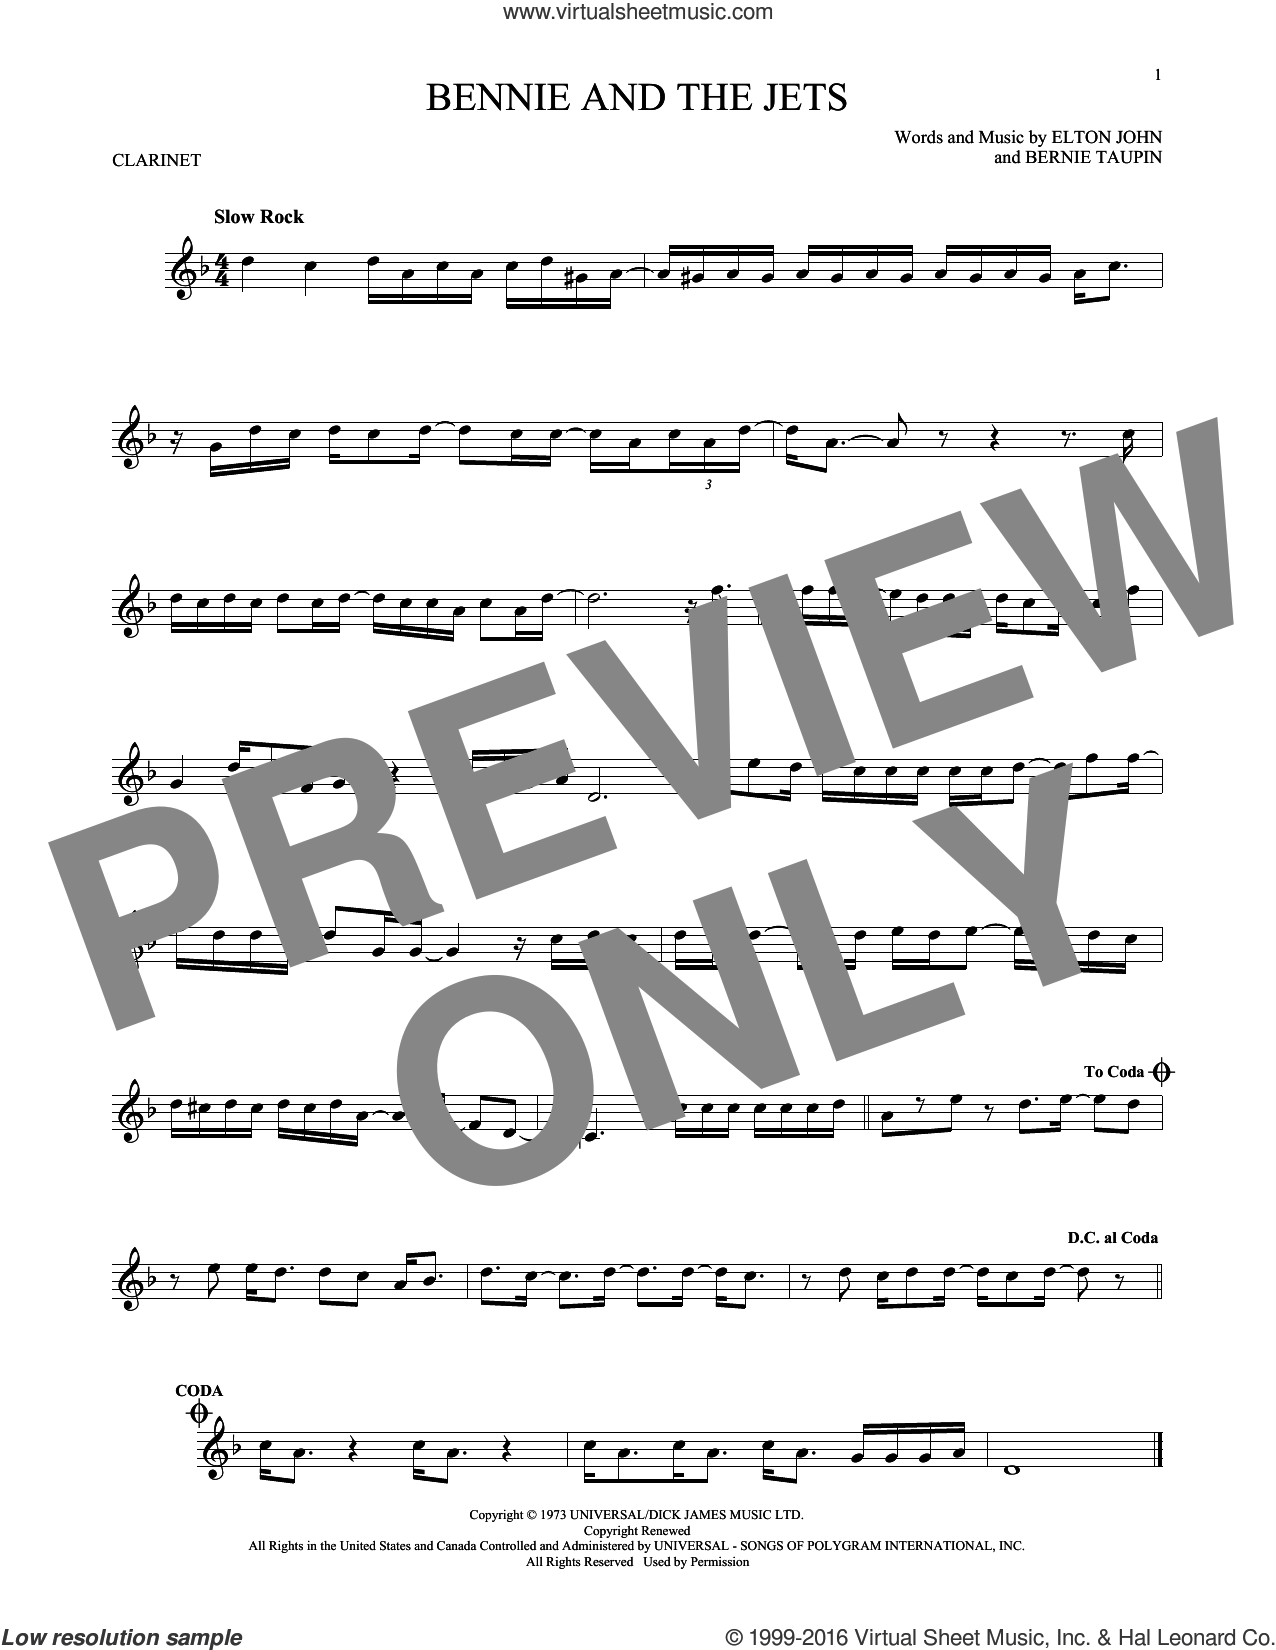 Bennie And The Jets sheet music for clarinet solo by Elton John and Bernie Taupin, intermediate skill level